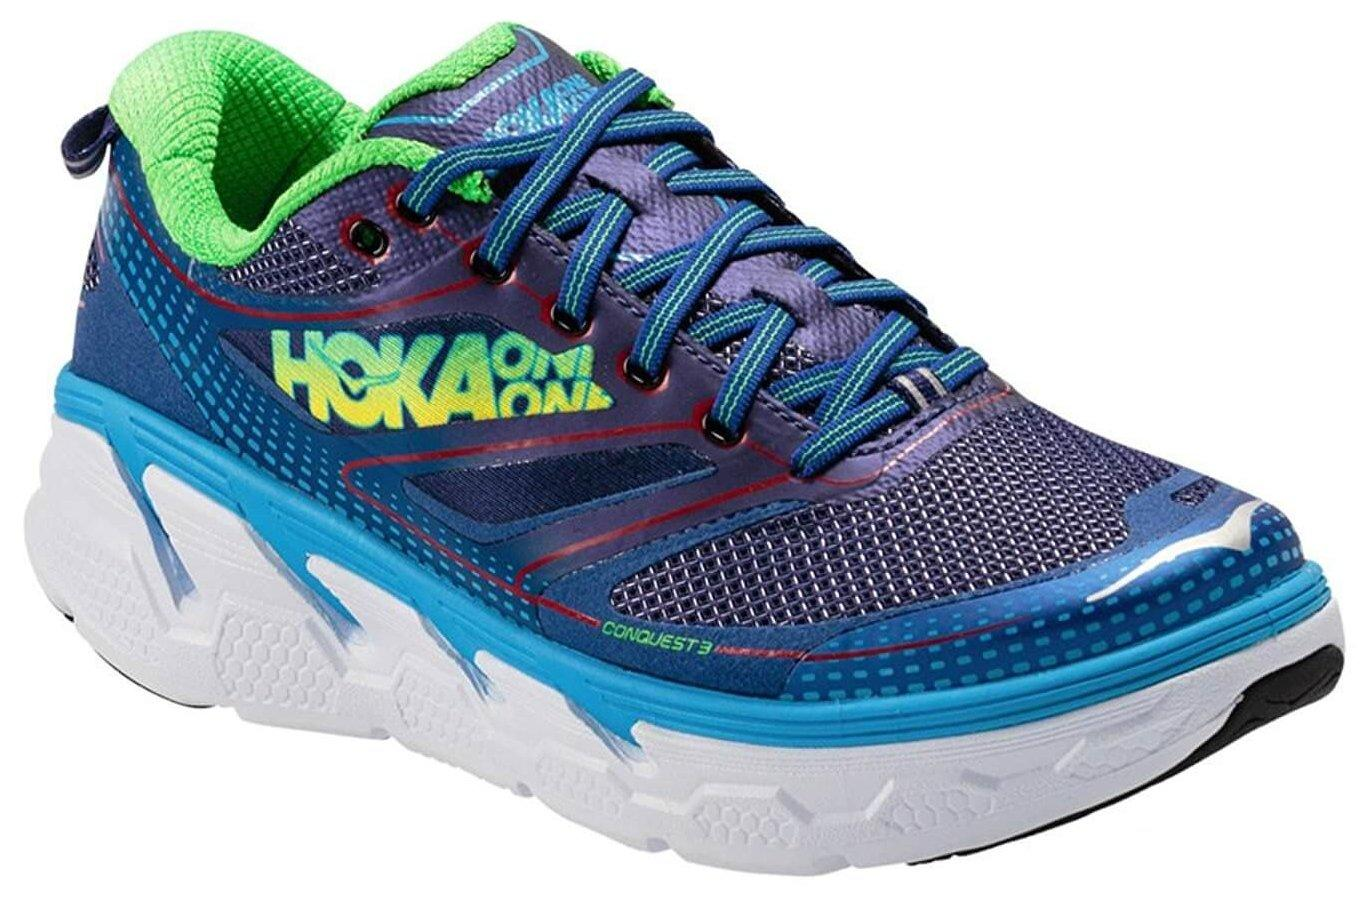 Hoka One One Conquest 3 Fully Reviewed 1